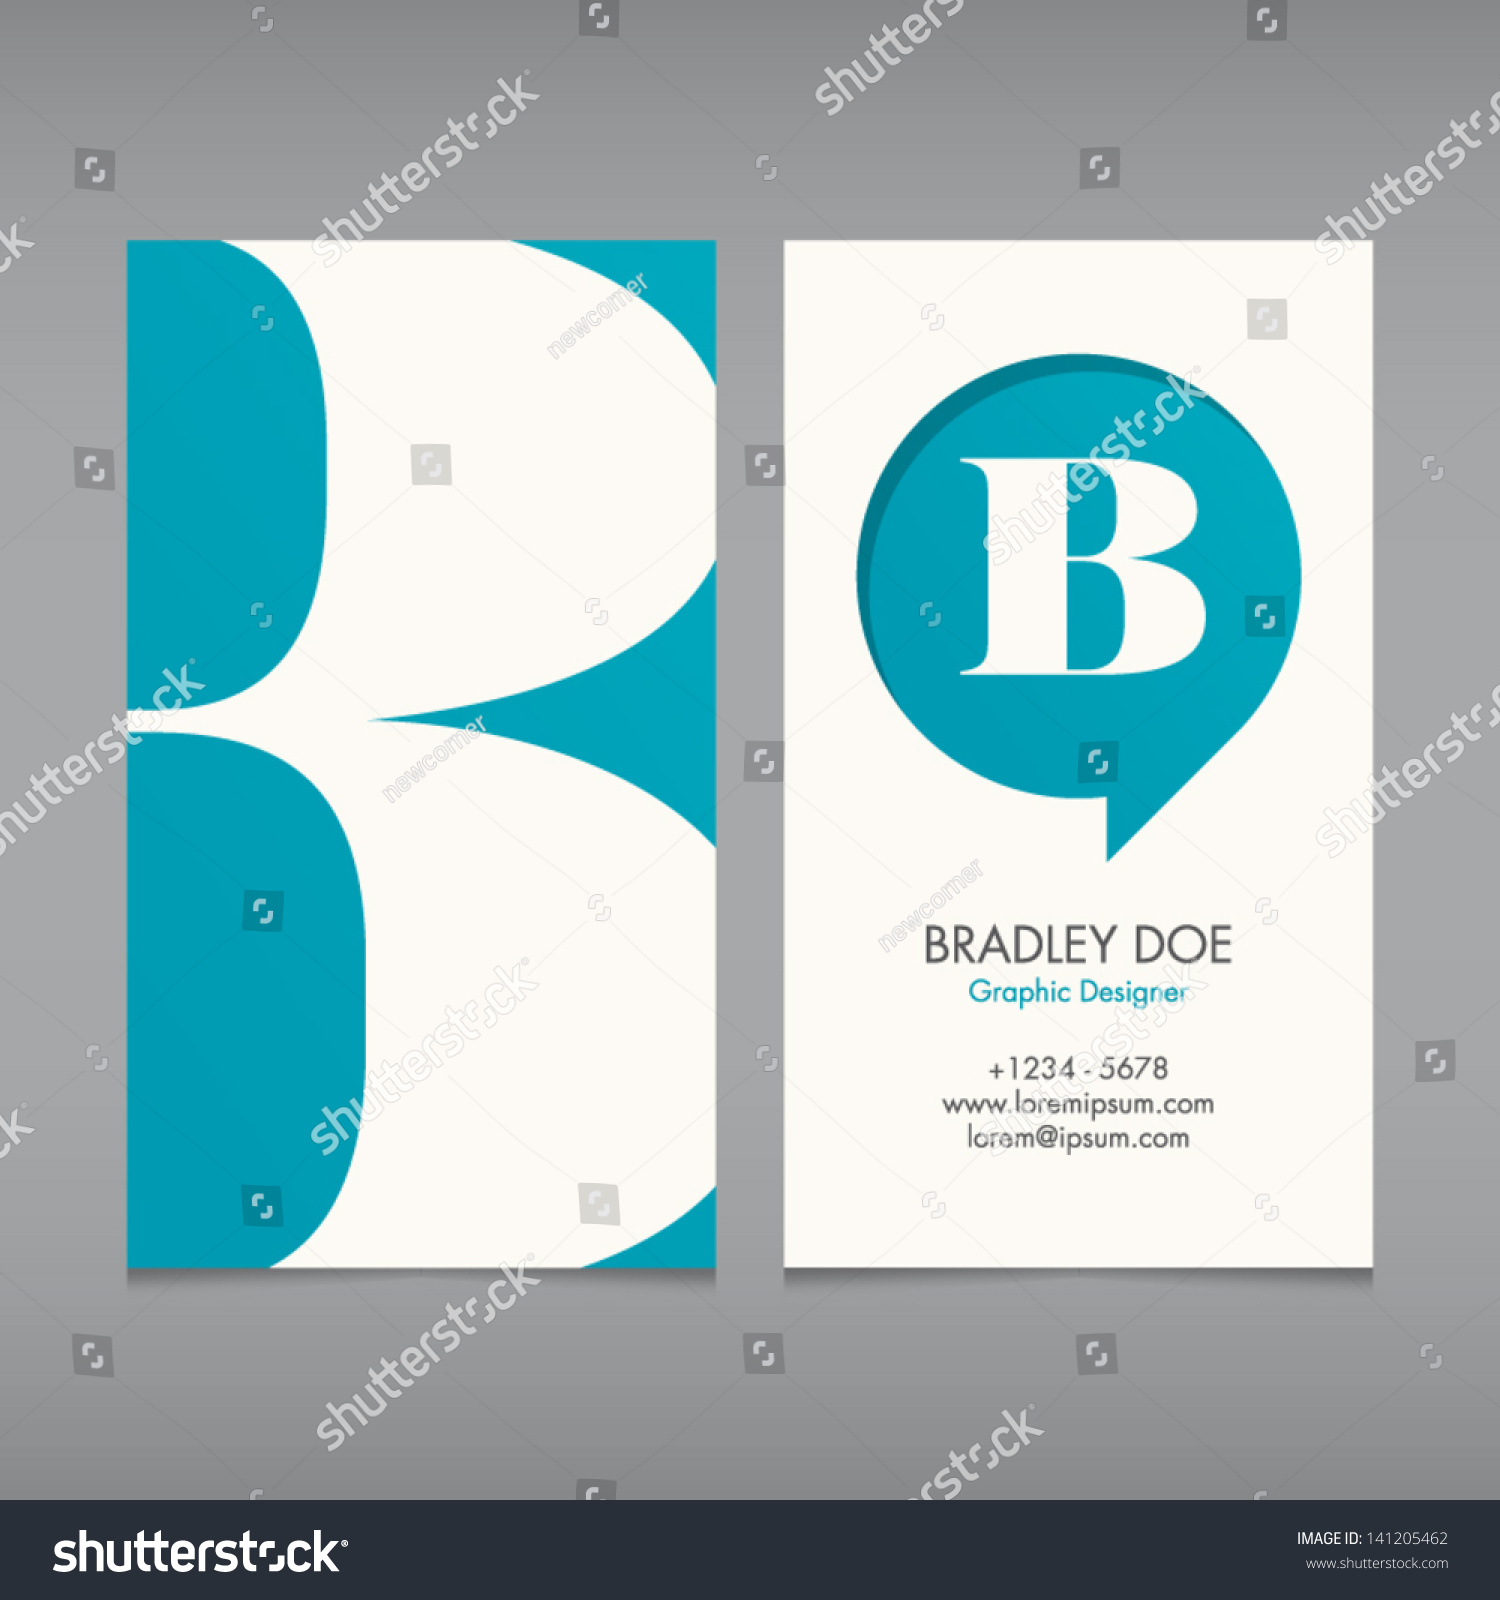 business card vector template alphabet letter stock vector business card vector template alphabet letter text color editable font type